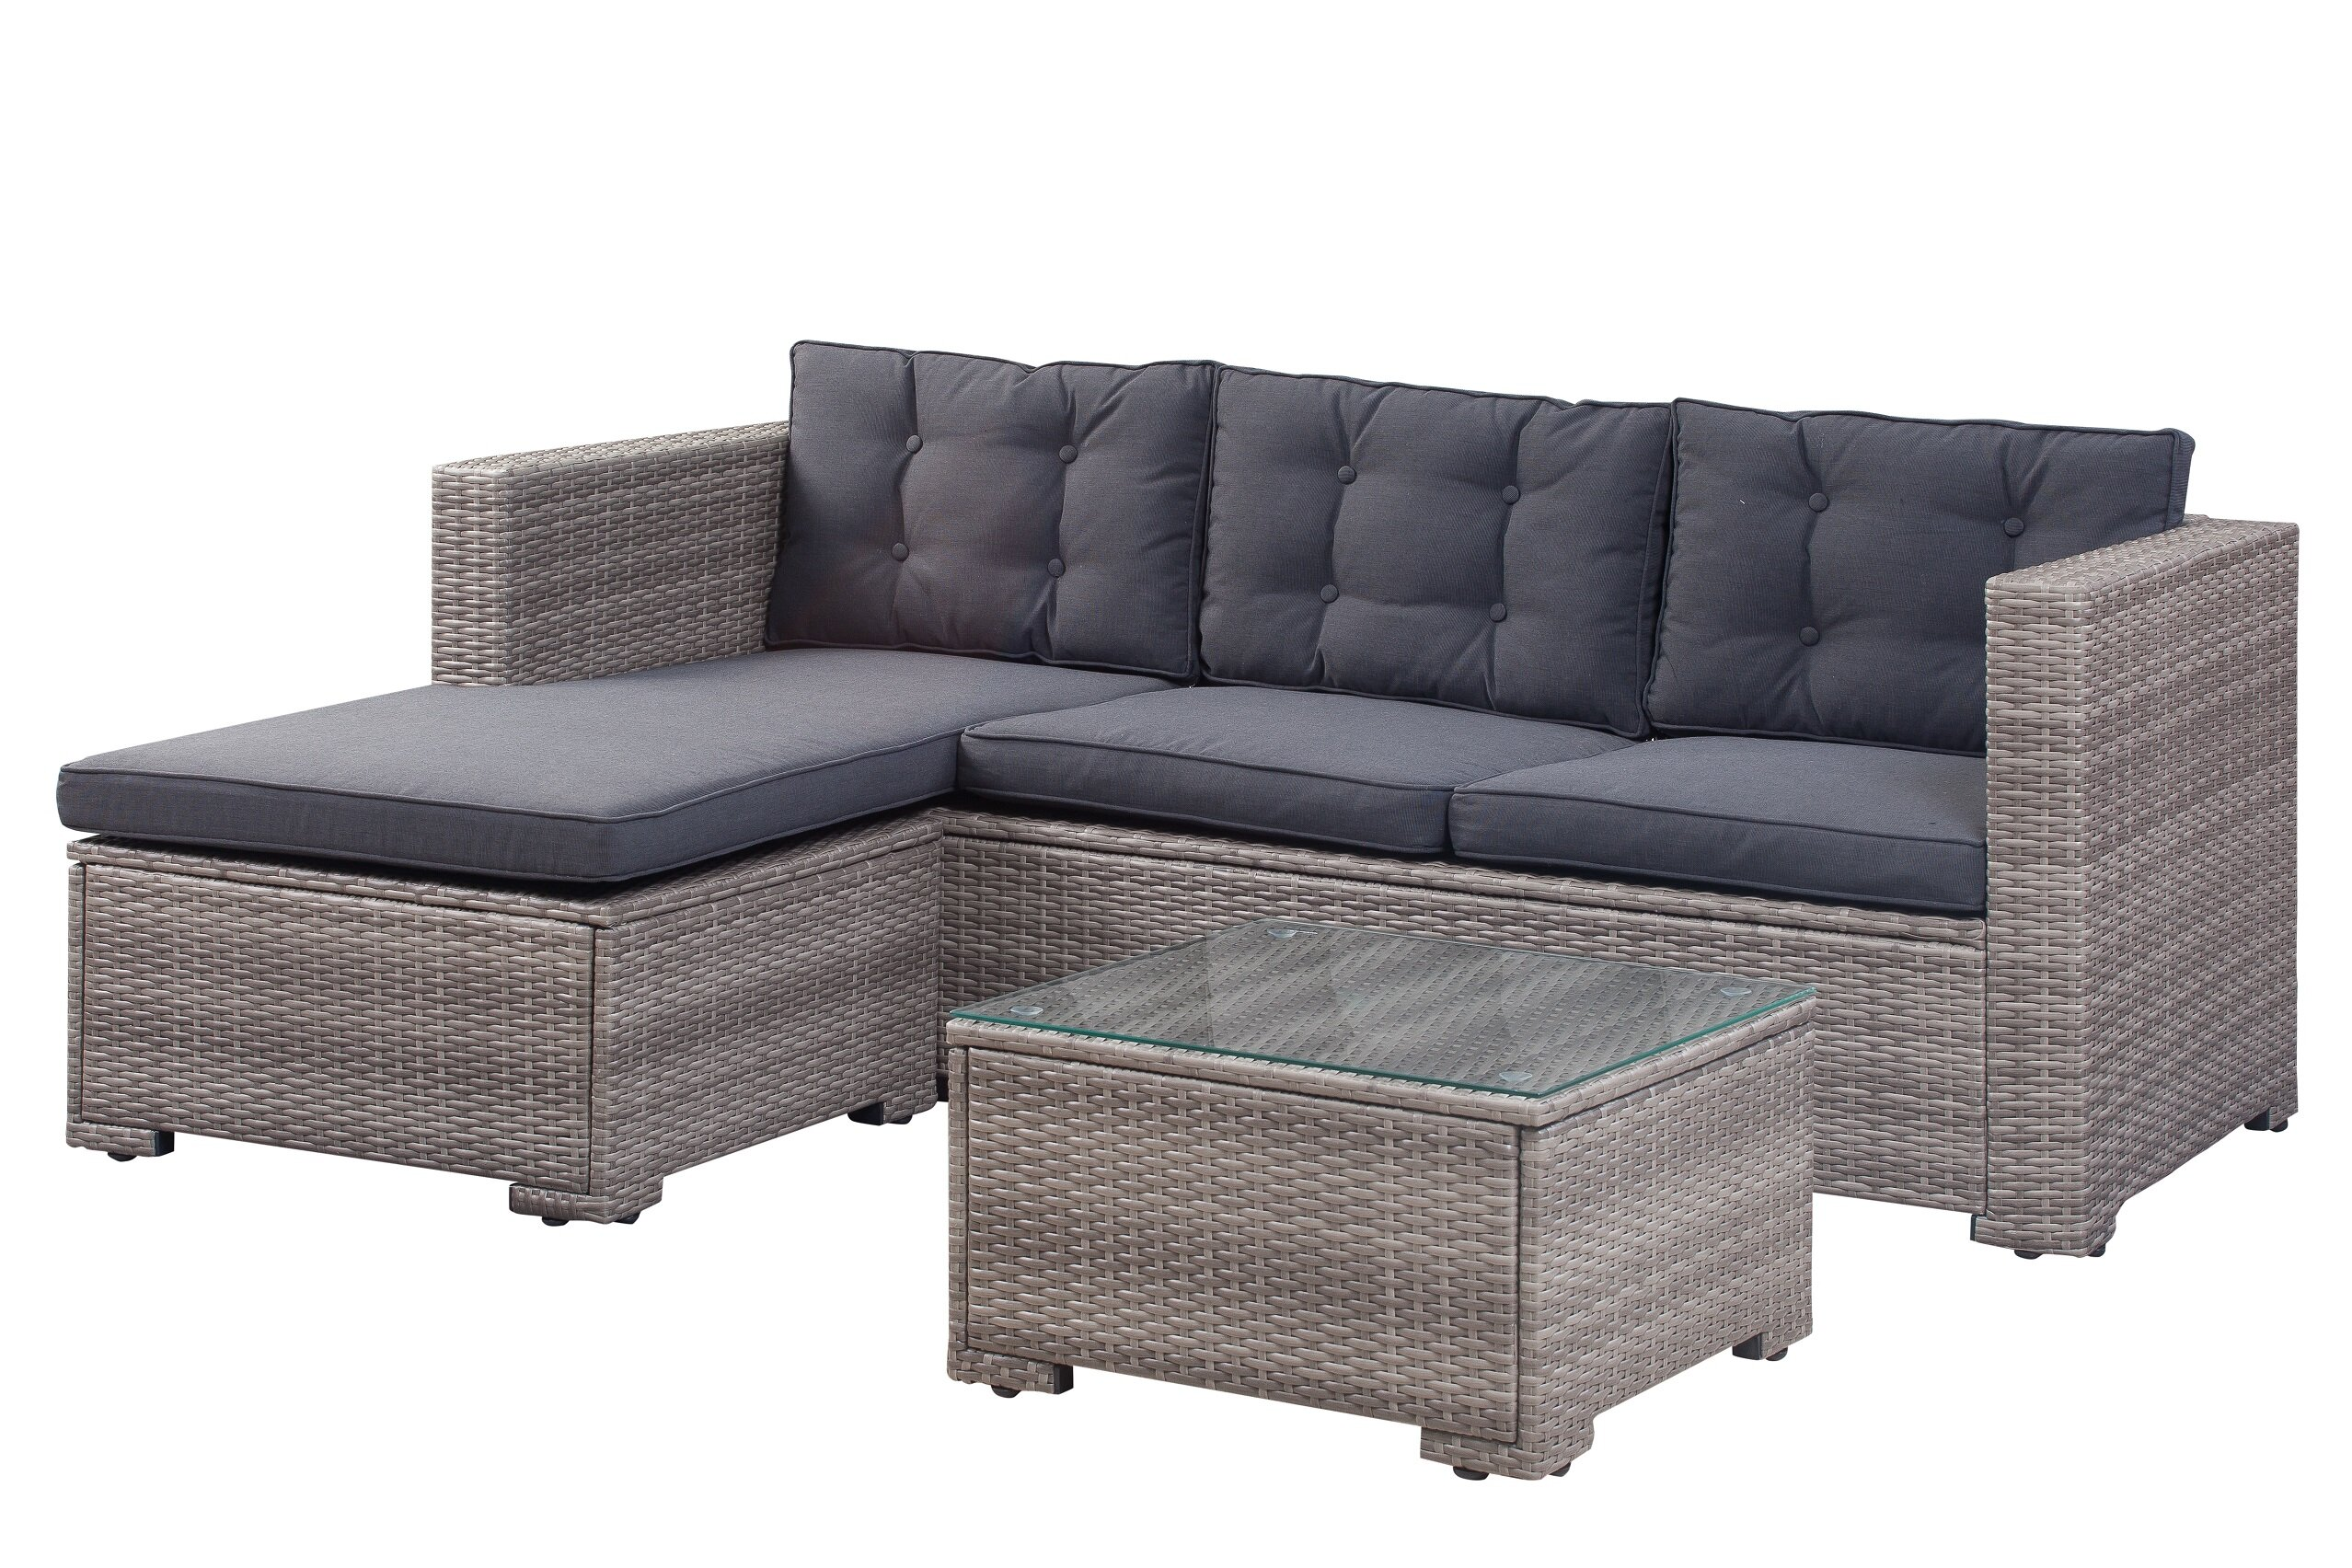 Beachcrest Home Henrie 3 Piece Rattan Sectional Set with Cushions